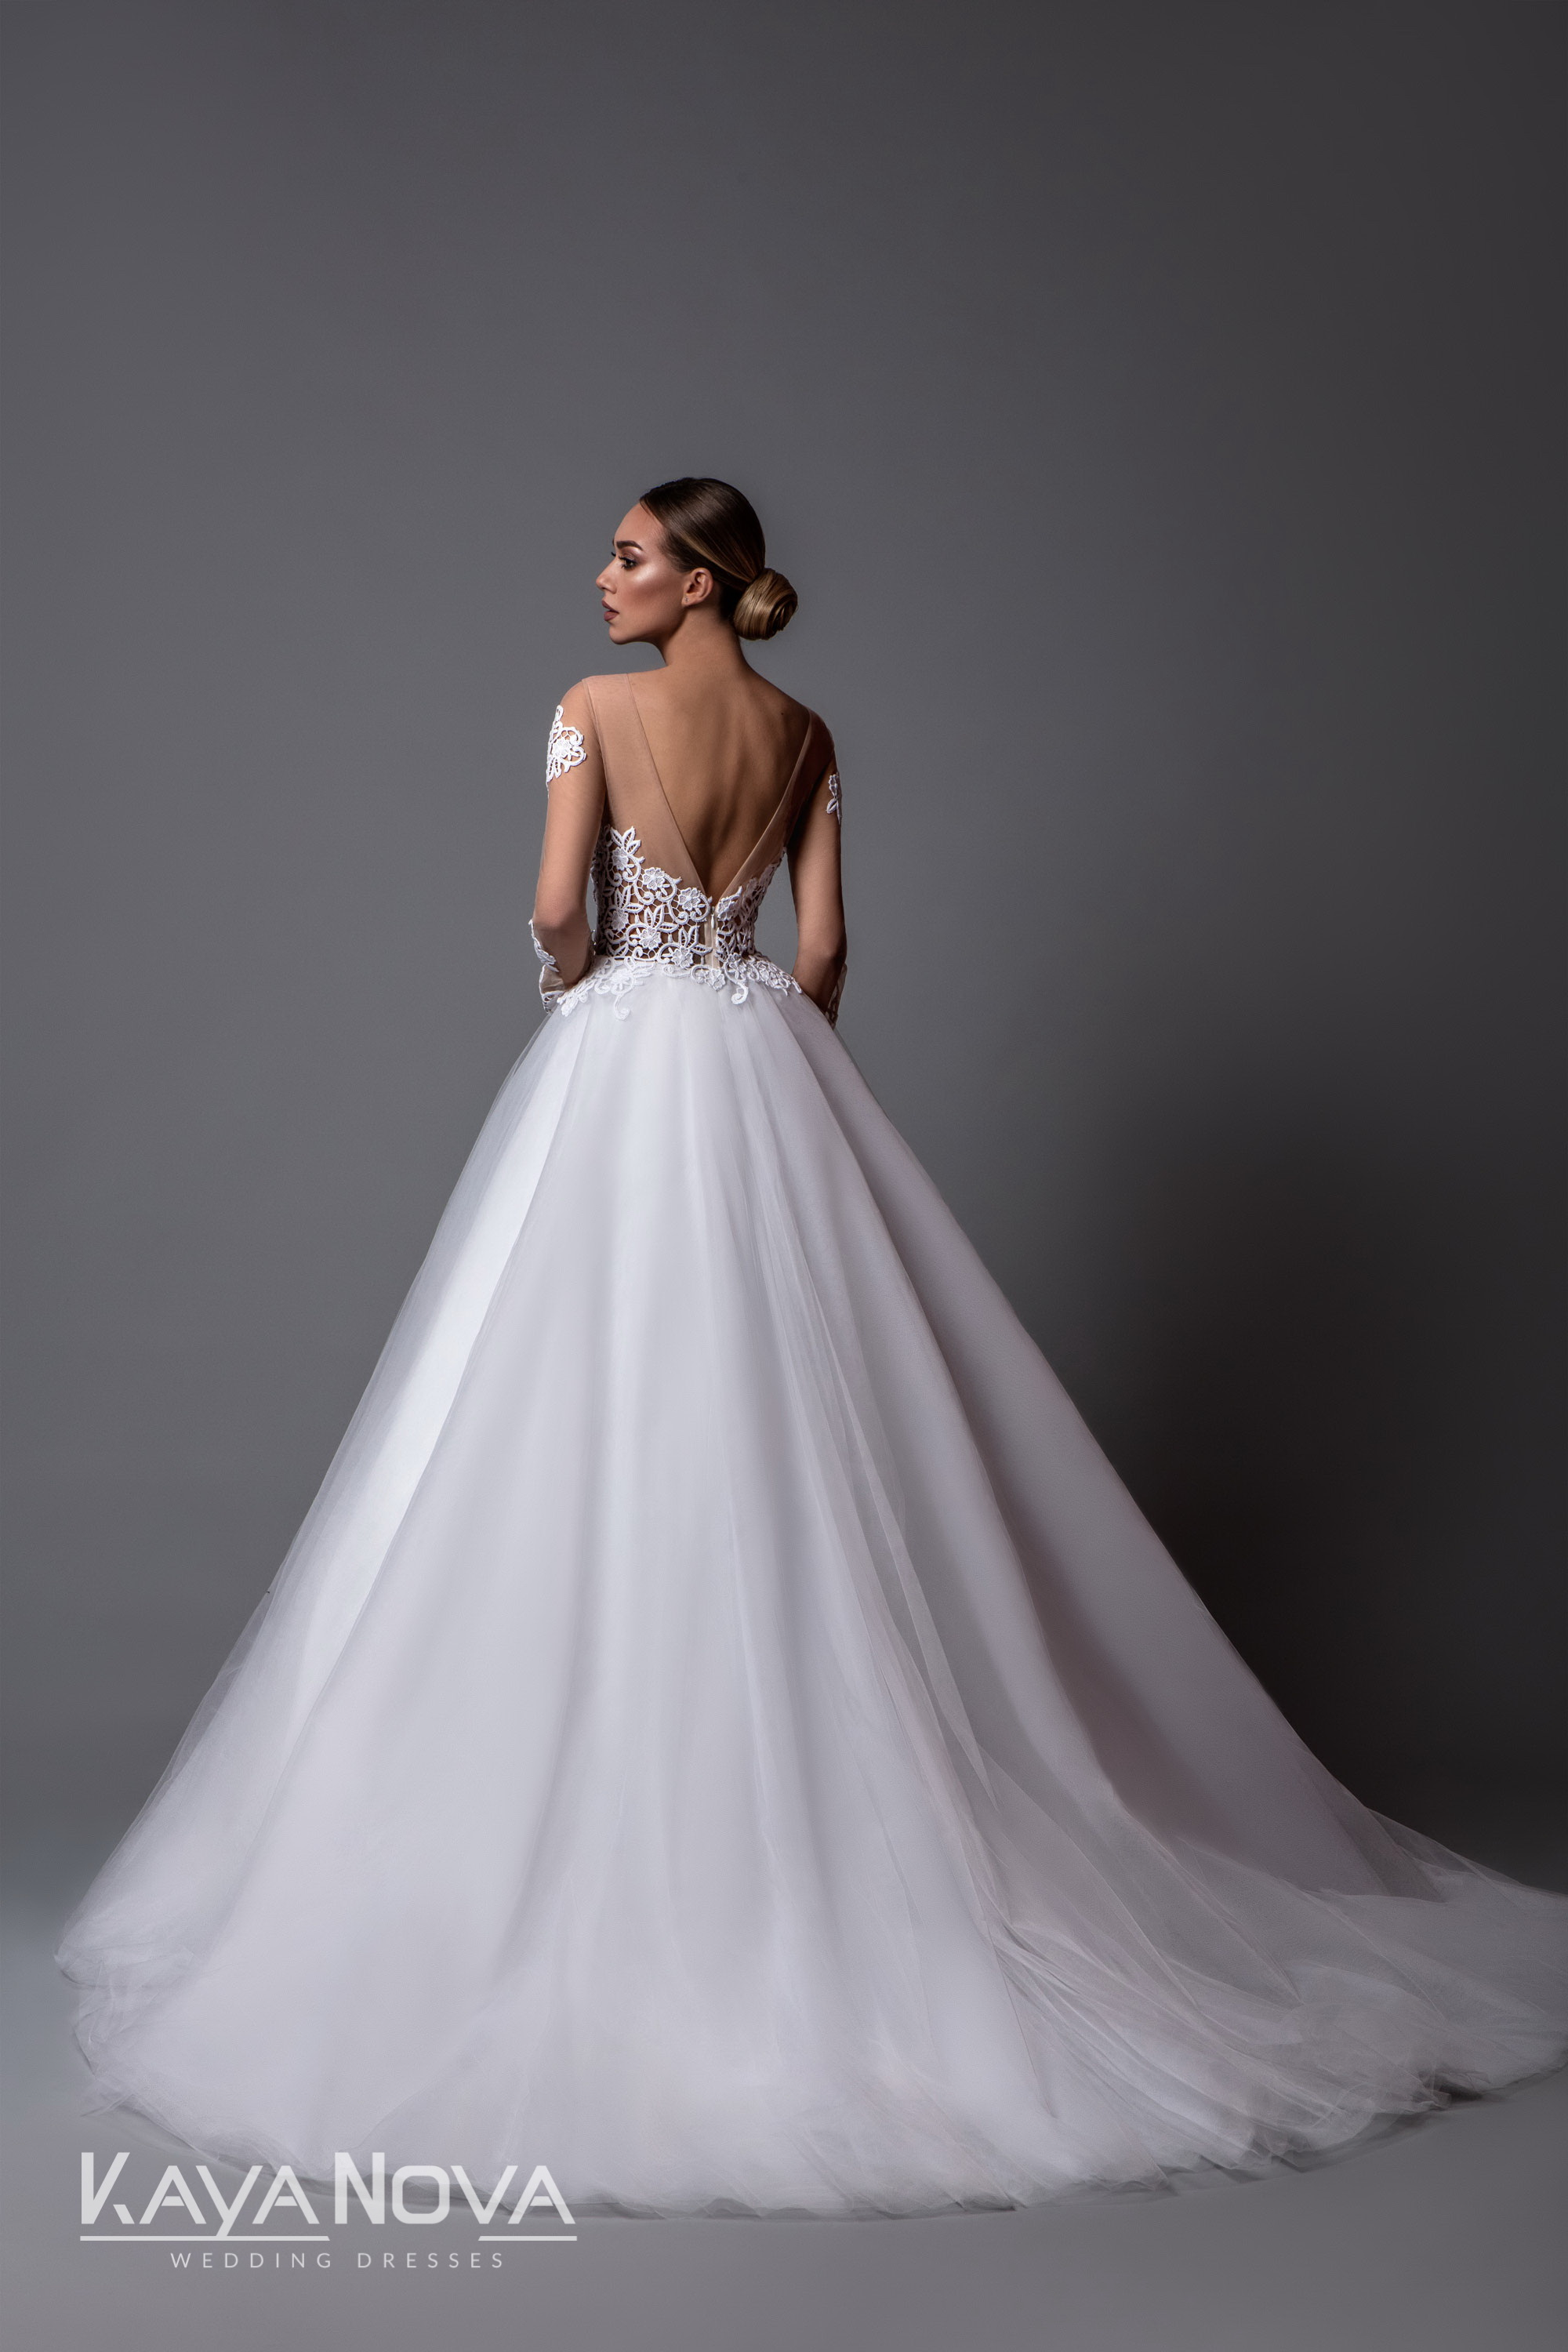 https://kayawedding.com/images/stories/virtuemart/product/Fidelia 2.jpg